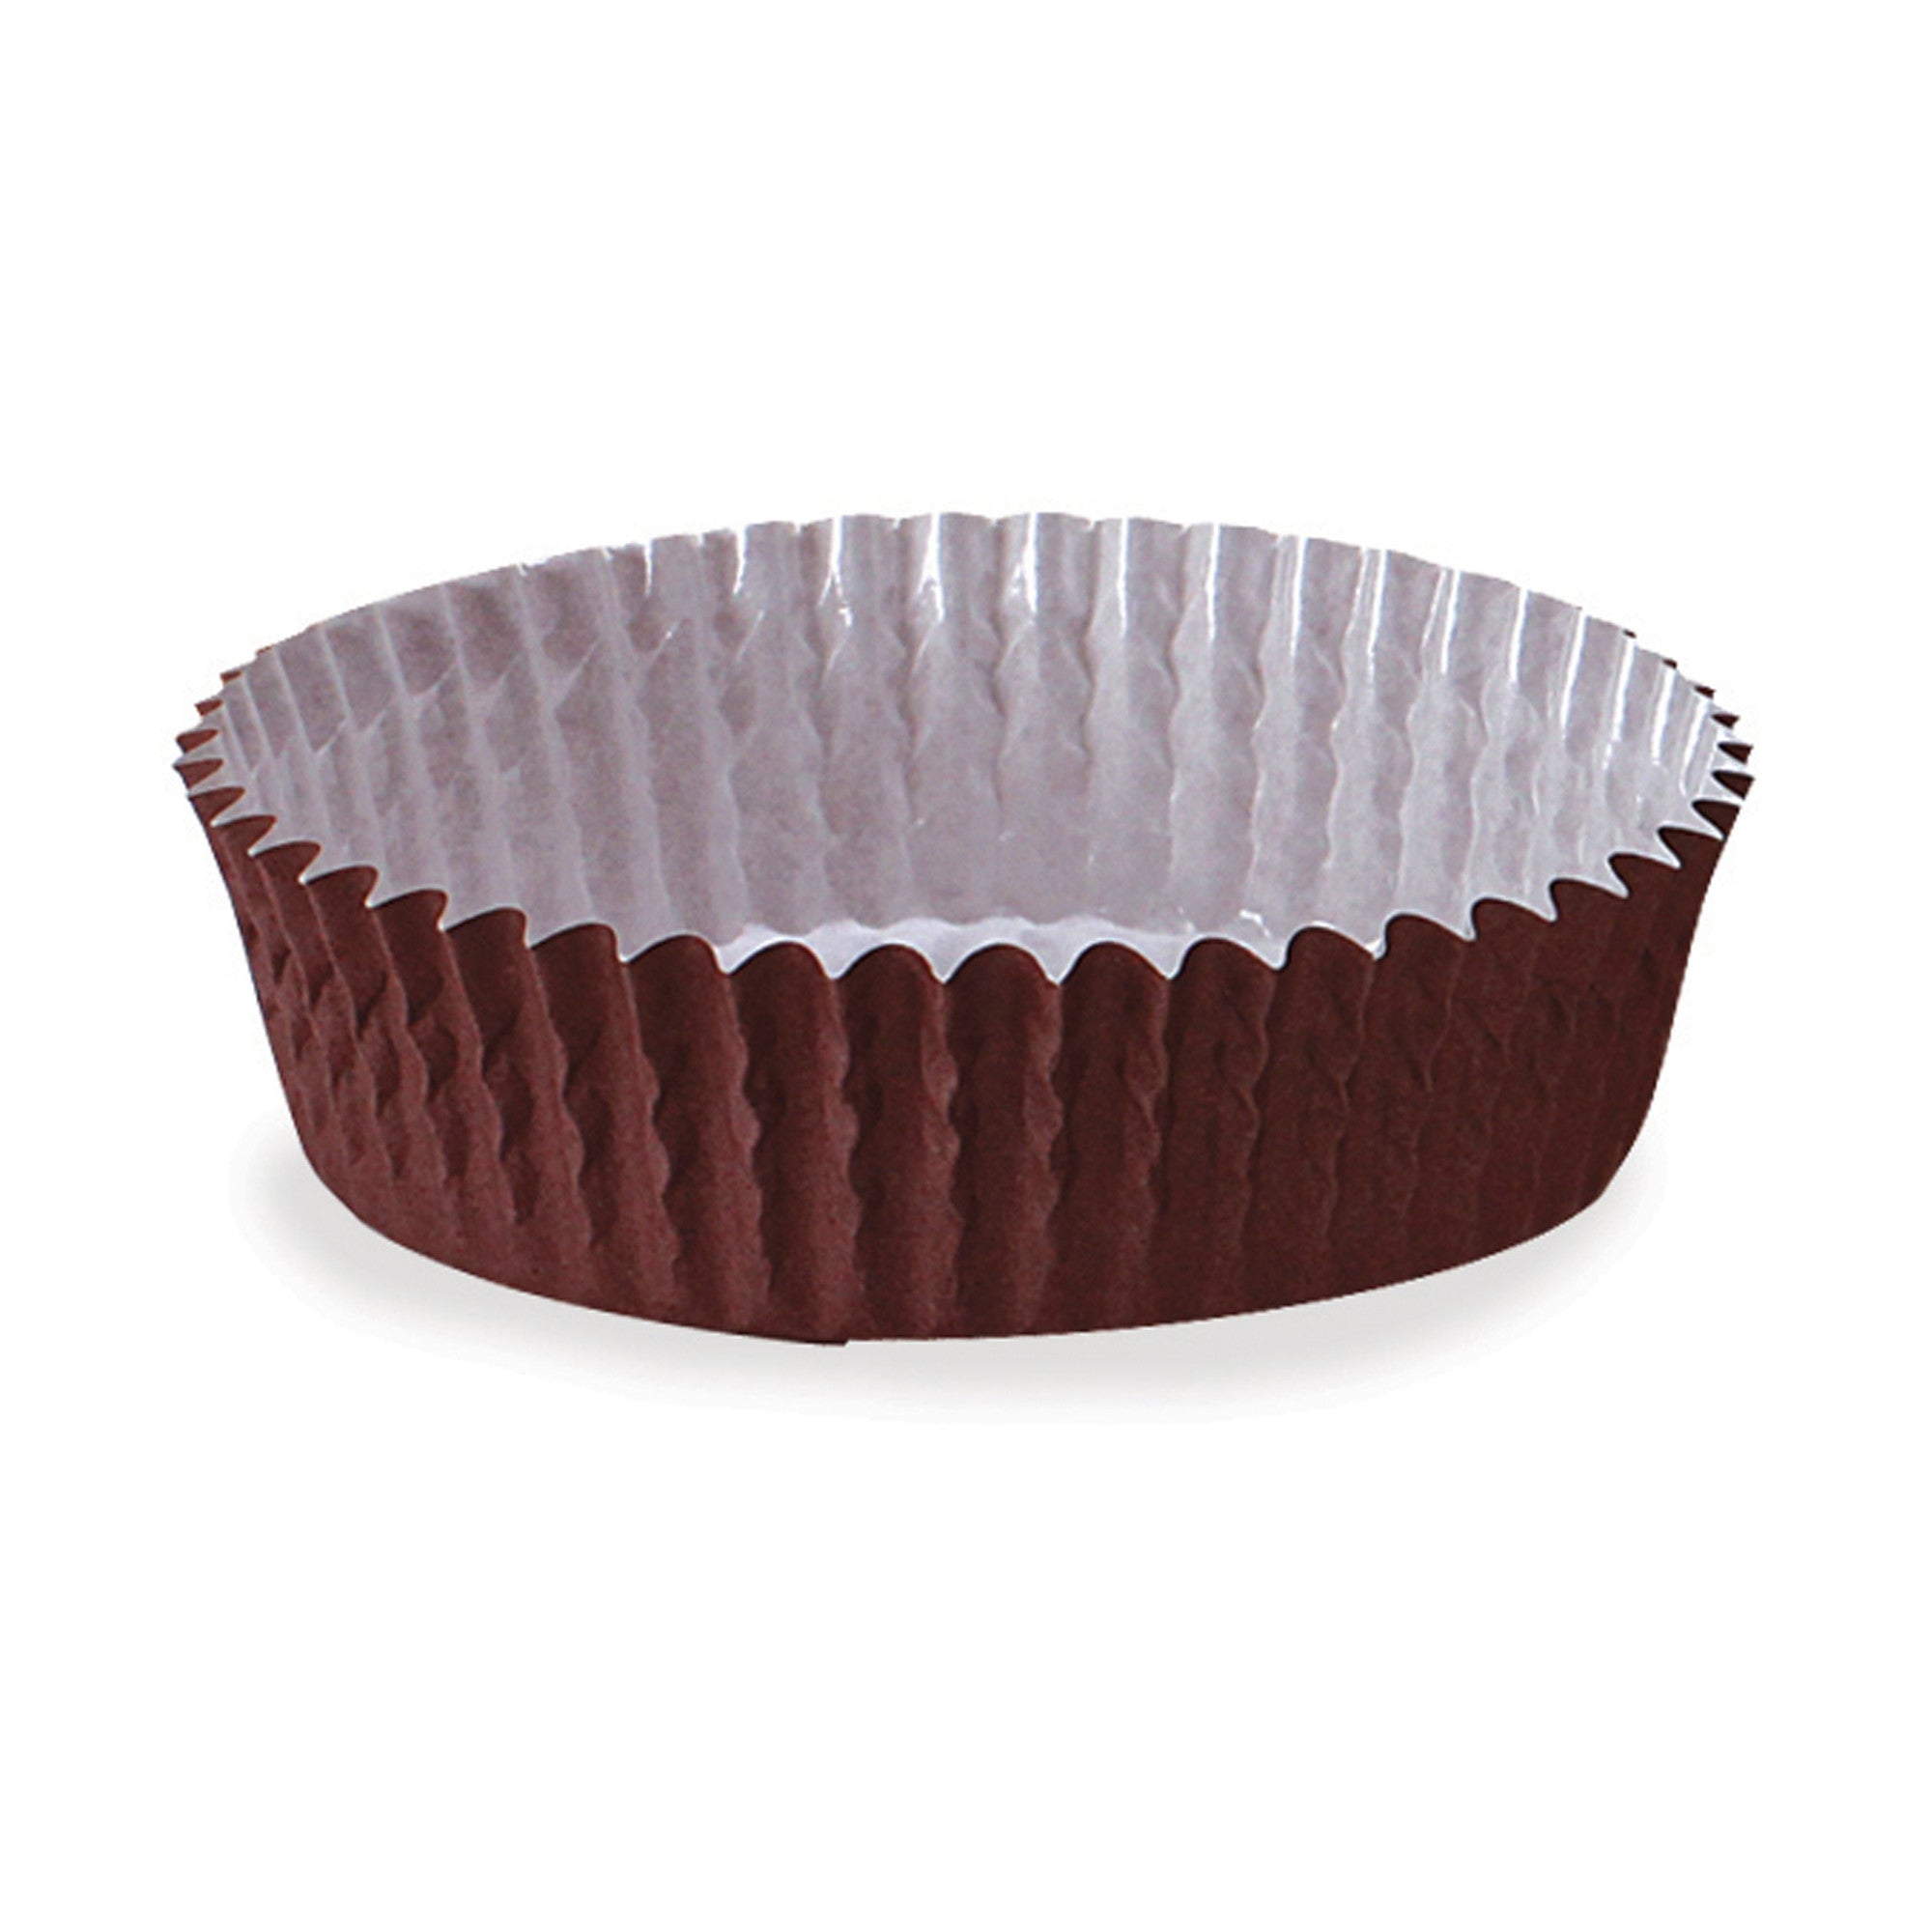 Ruffled Baking Cups, PTC12030S - Welcome Home Brands